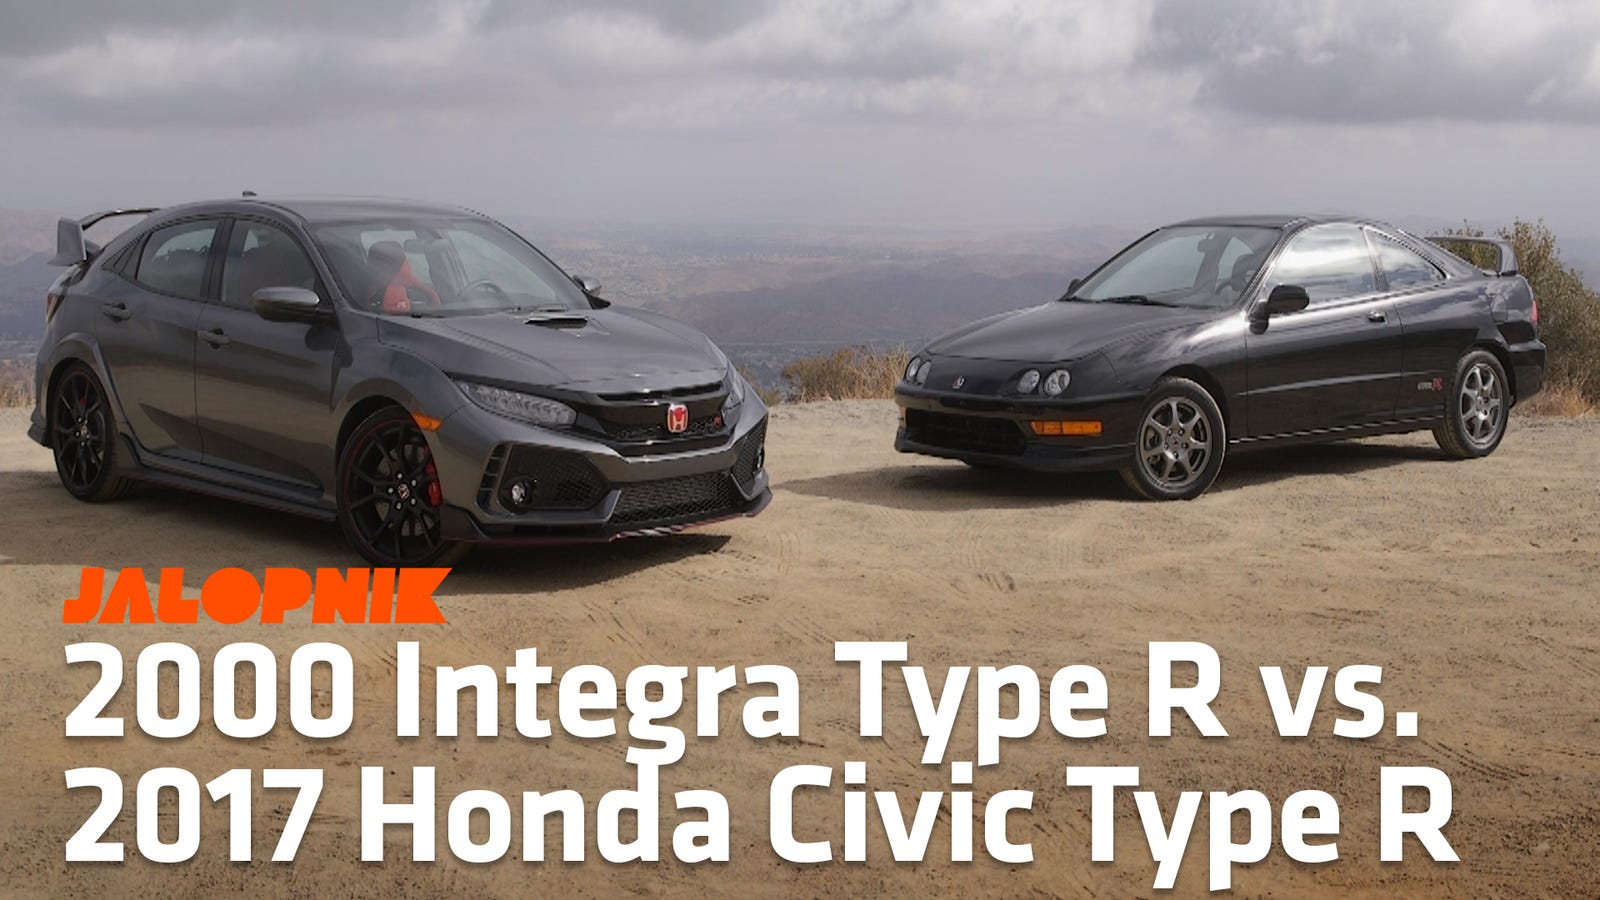 See How The 2017 Honda Civic Type R Compares To The Acura Integra Type R